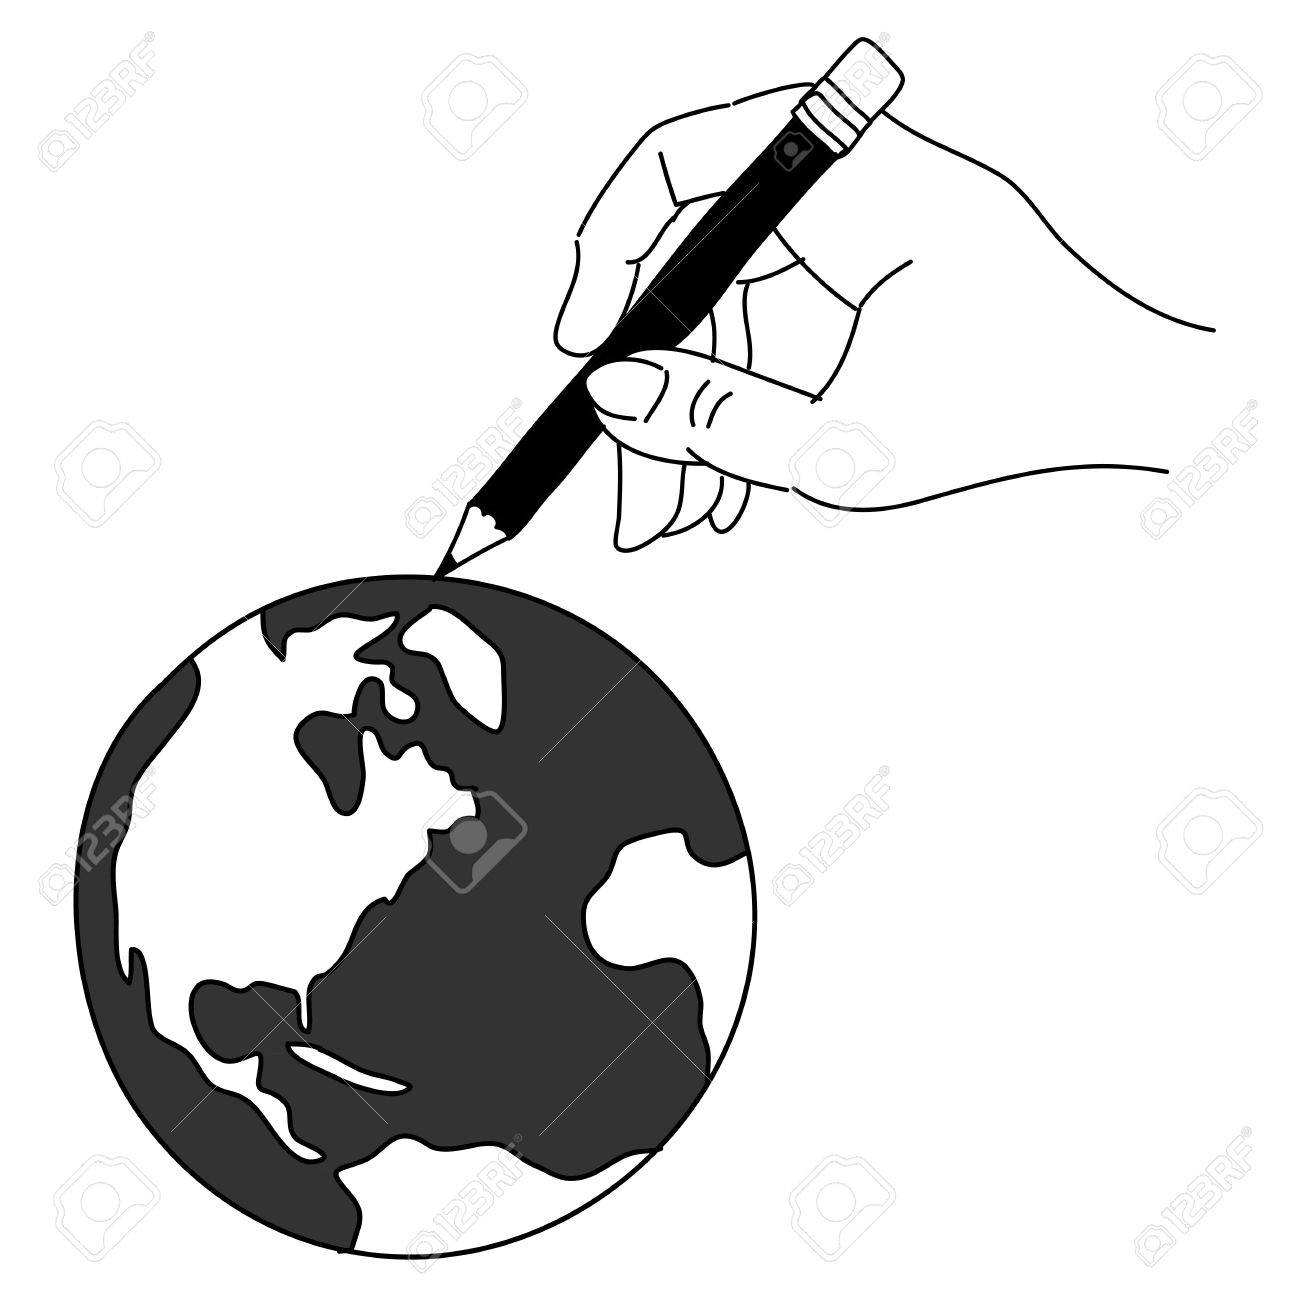 hand drawing freehand sketch global for design Stock Vector - 18817165